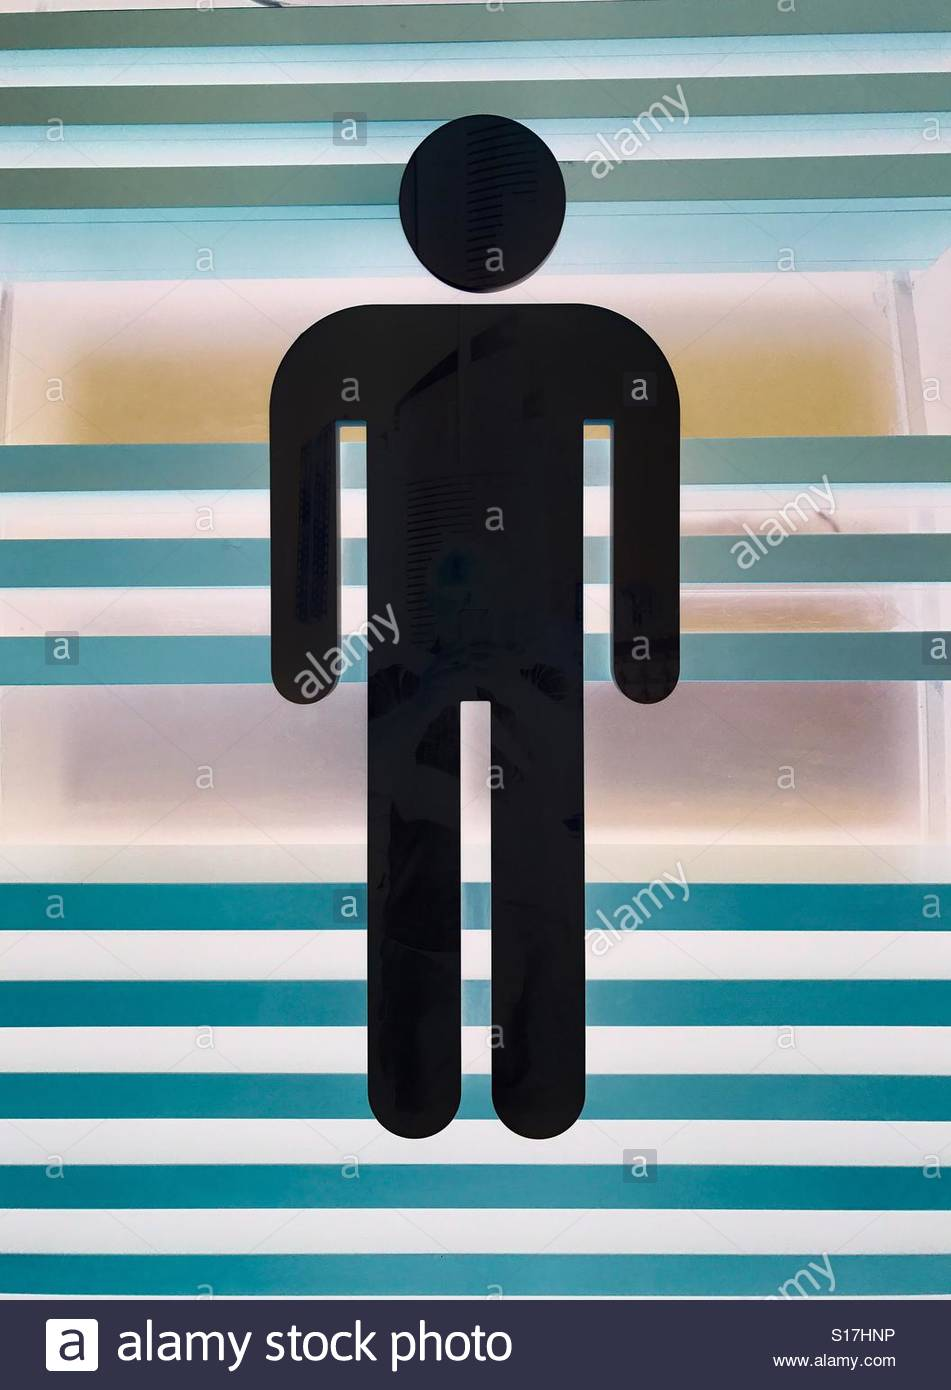 Symbol of a Man standing - Stock Image